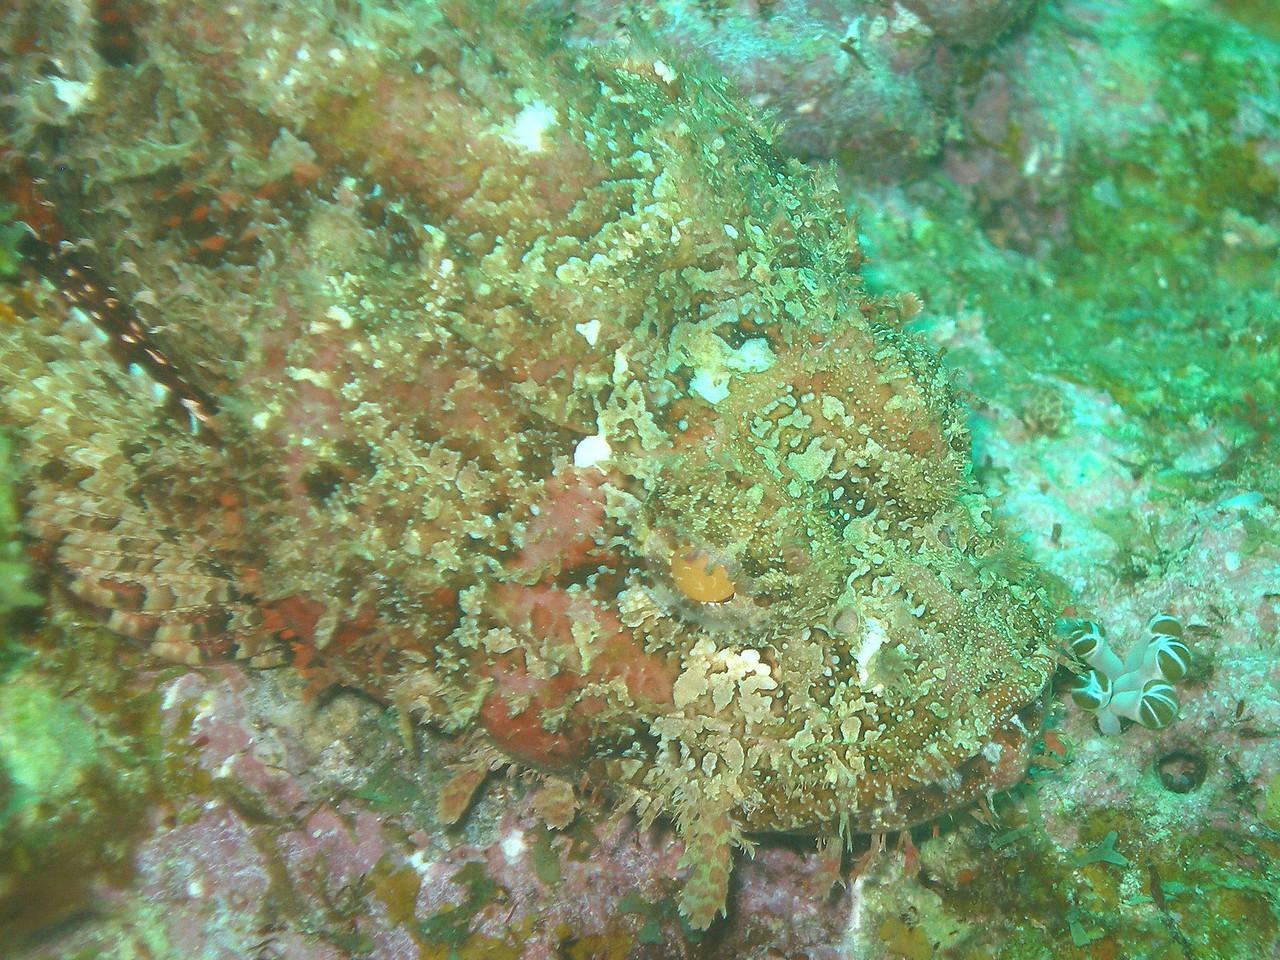 Spotted scorpionfish - can you see it?